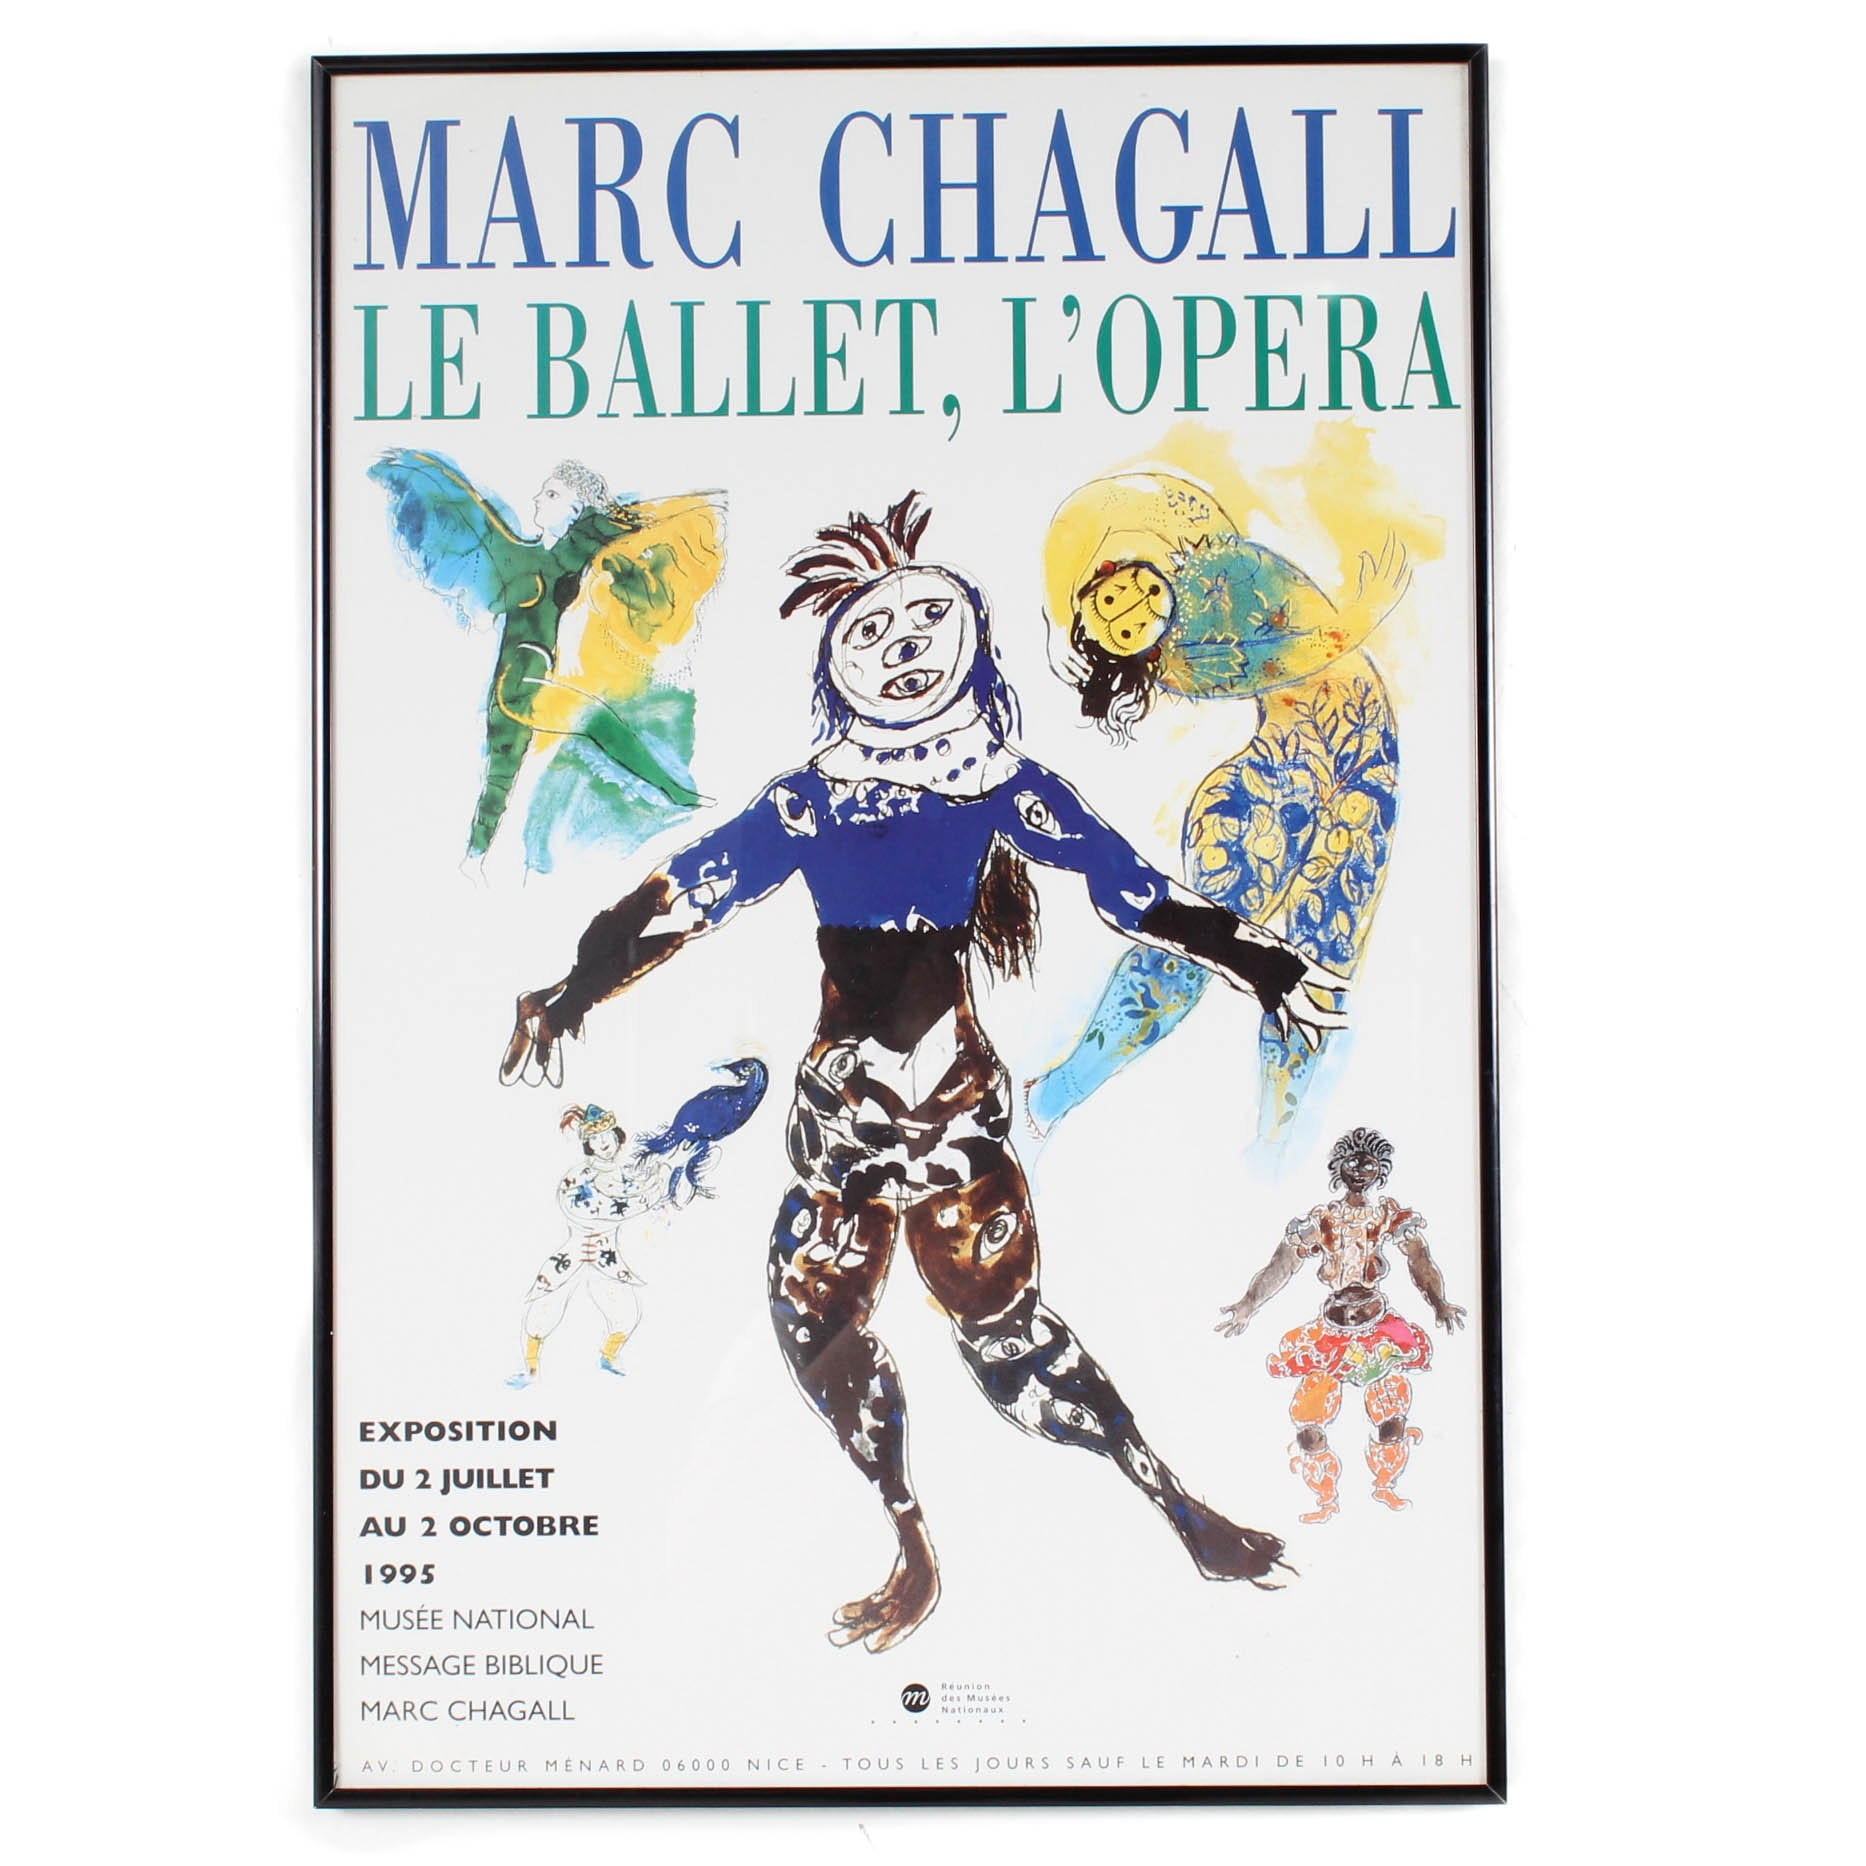 French Marc Chagall Exhibition Poster